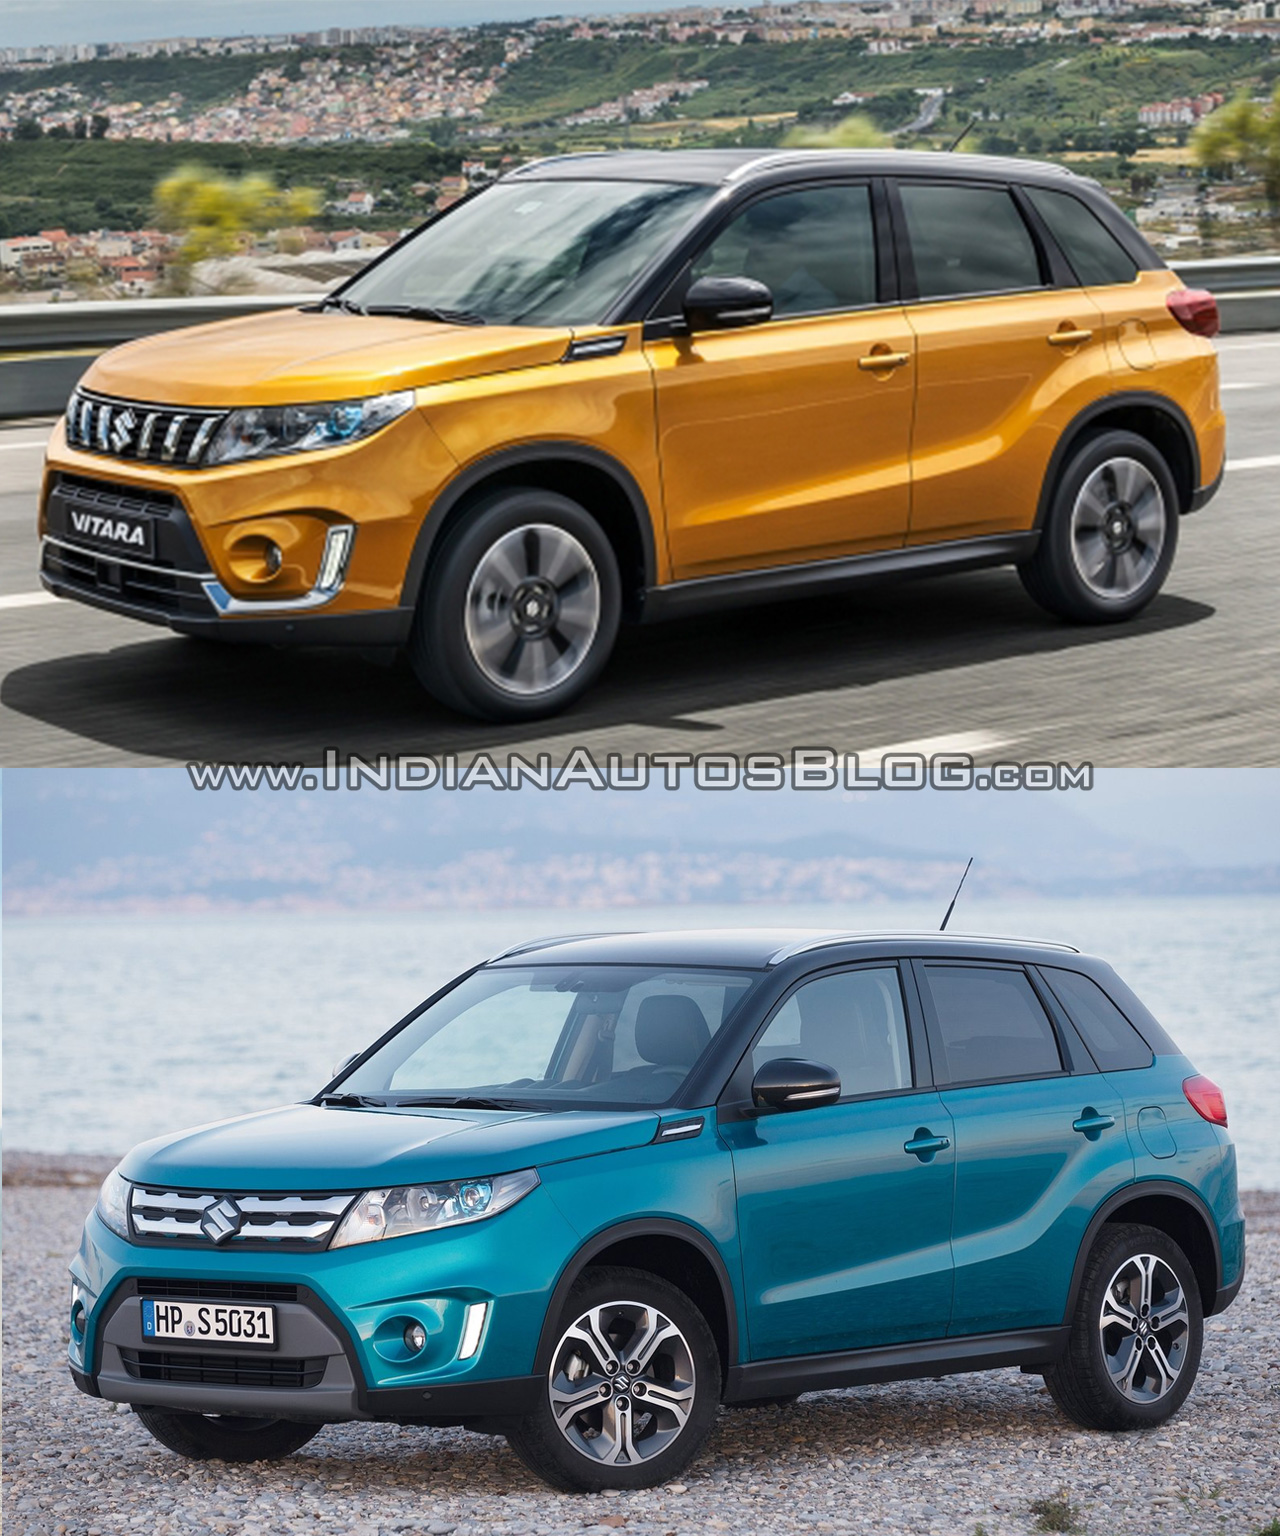 2019 suzuki vitara vs 2015 suzuki vitara old vs new. Black Bedroom Furniture Sets. Home Design Ideas